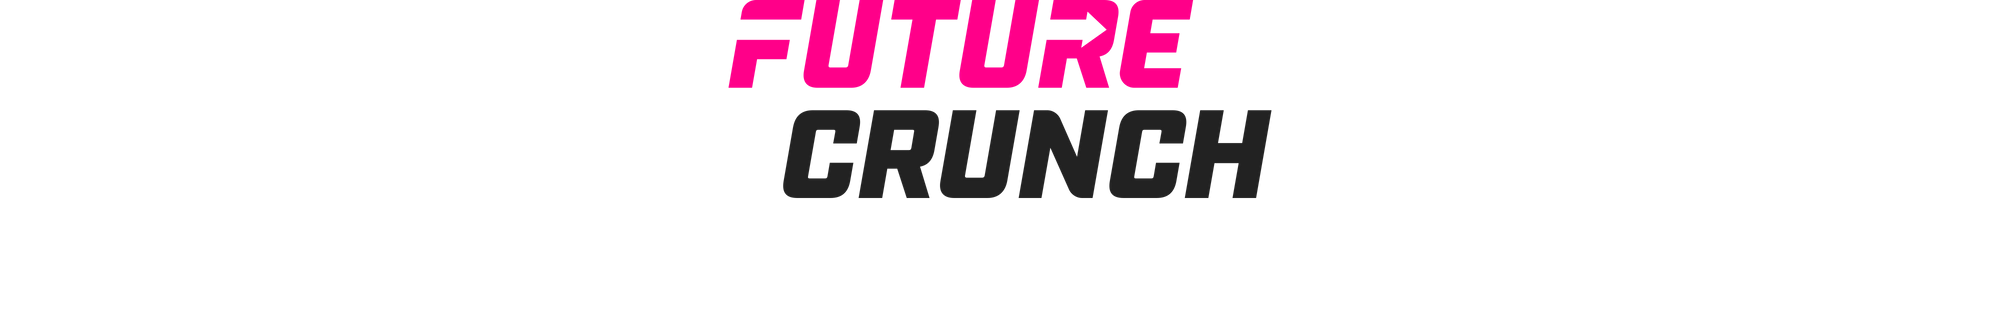 Future Crunch logo